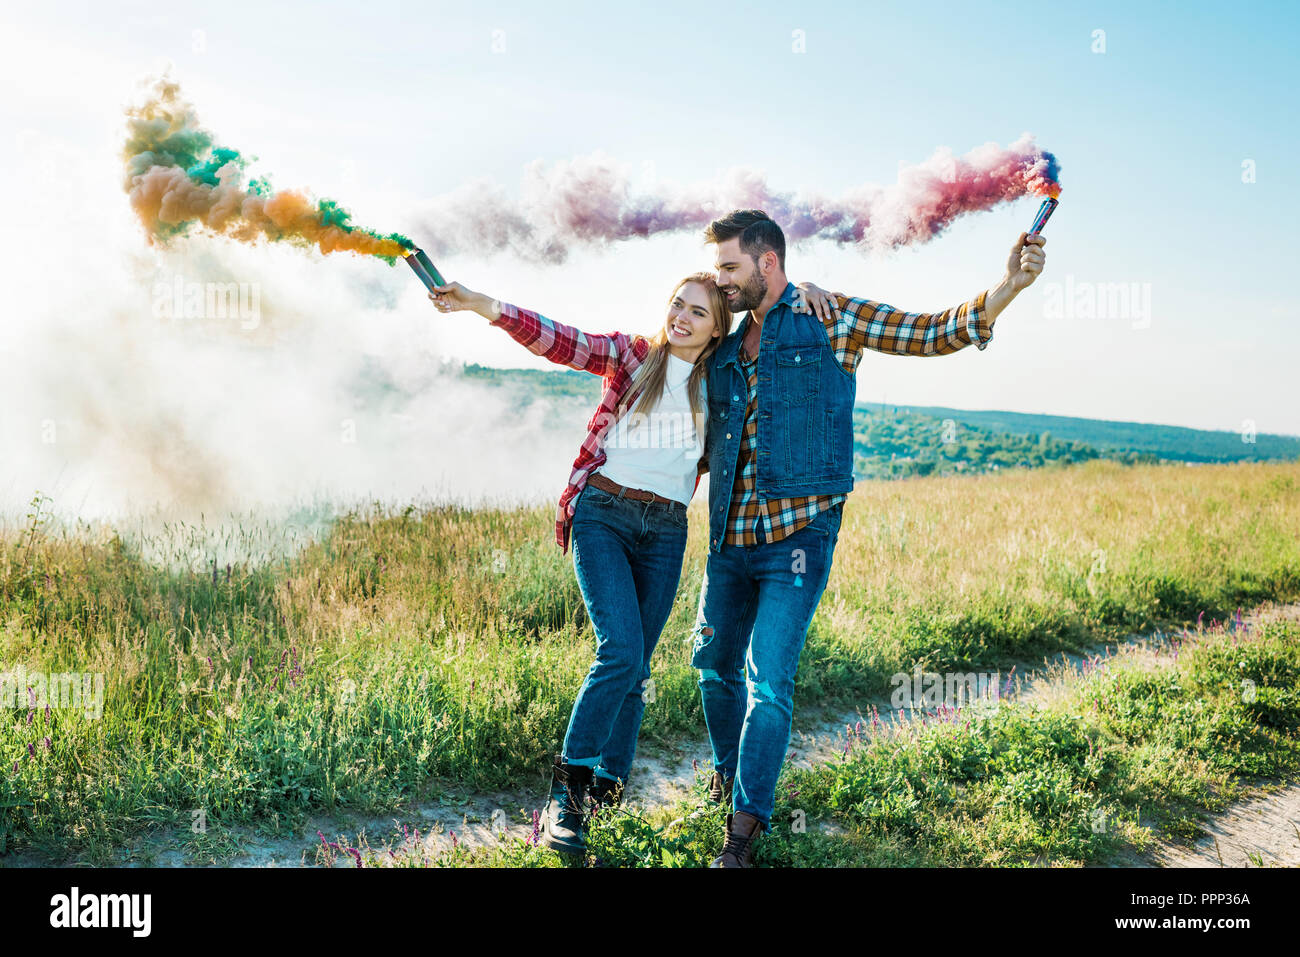 young couple holding colorful smoke bombs in field - Stock Image